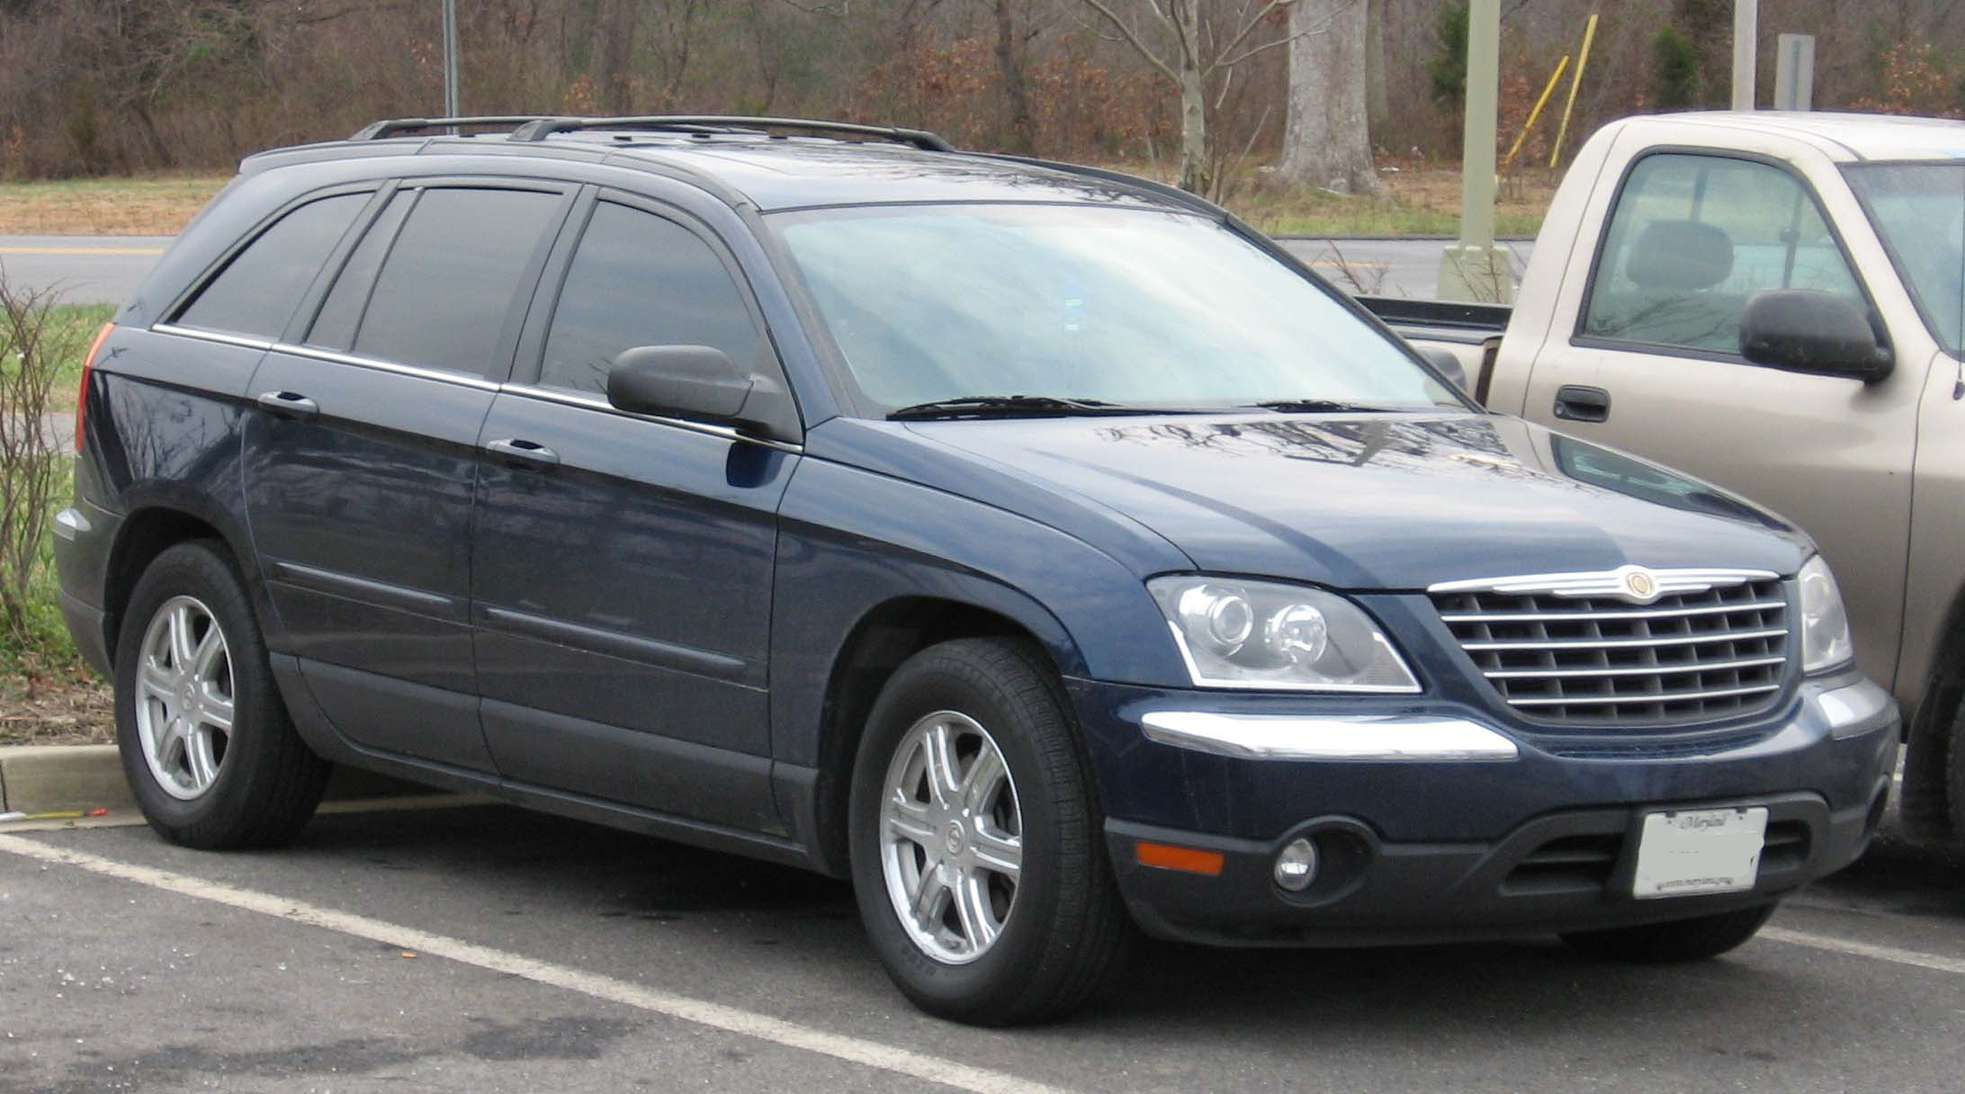 Chrysler Pacifica #8562943